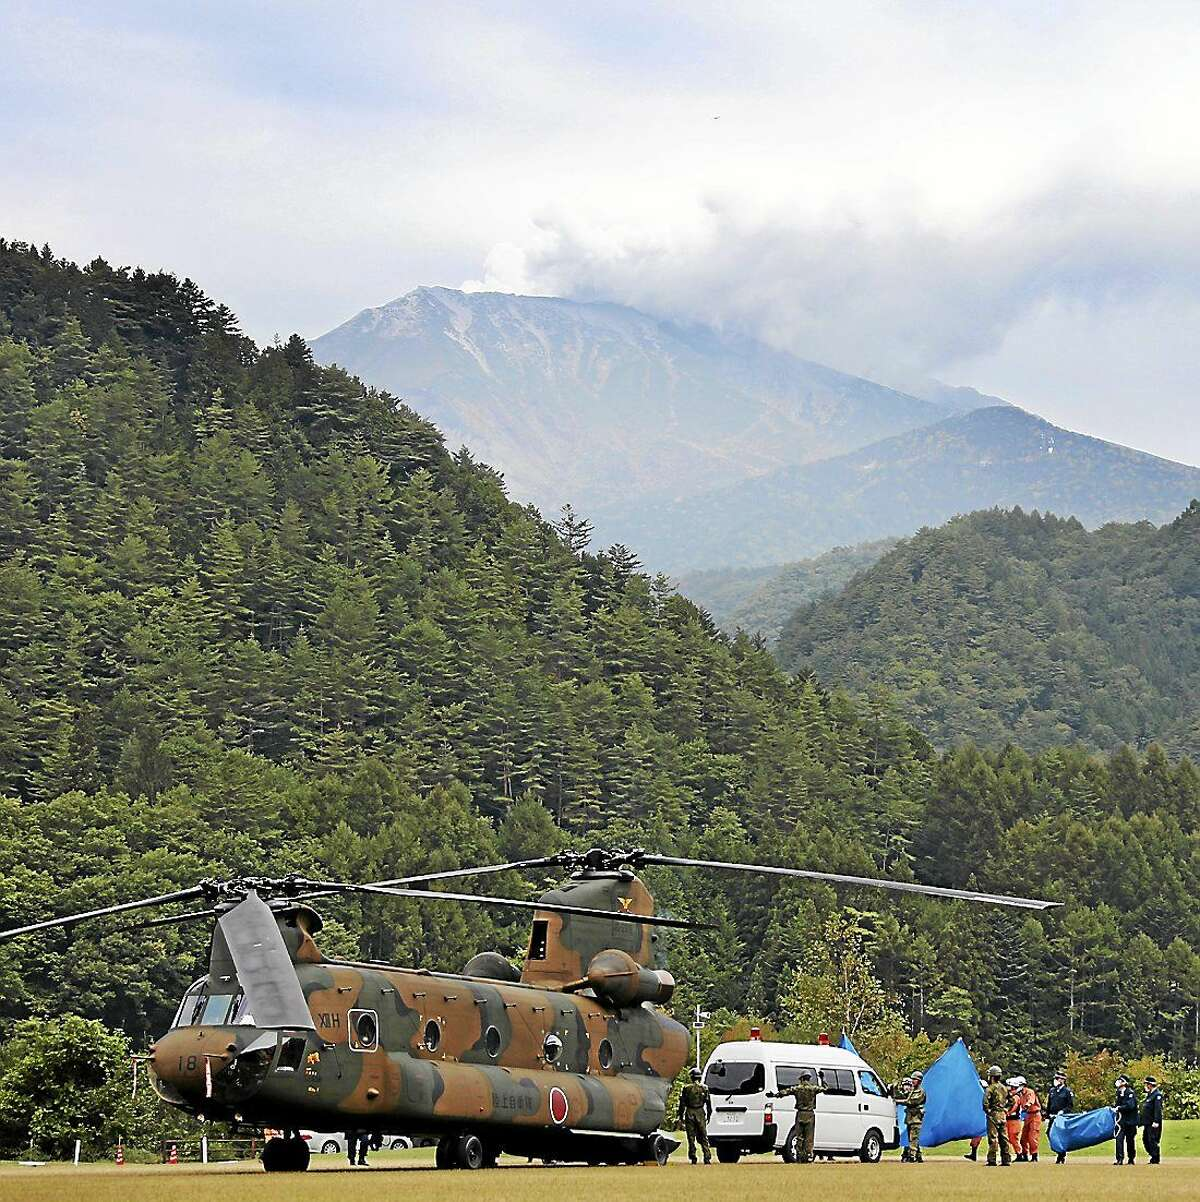 A Ground Self-Defense Force CH47 transport helicopter is on standby in Ontake, Nagano Prefecture. Rescue operations at Mount Otake were suspended Tuesday morning because of signs that volcanic activity could resume.